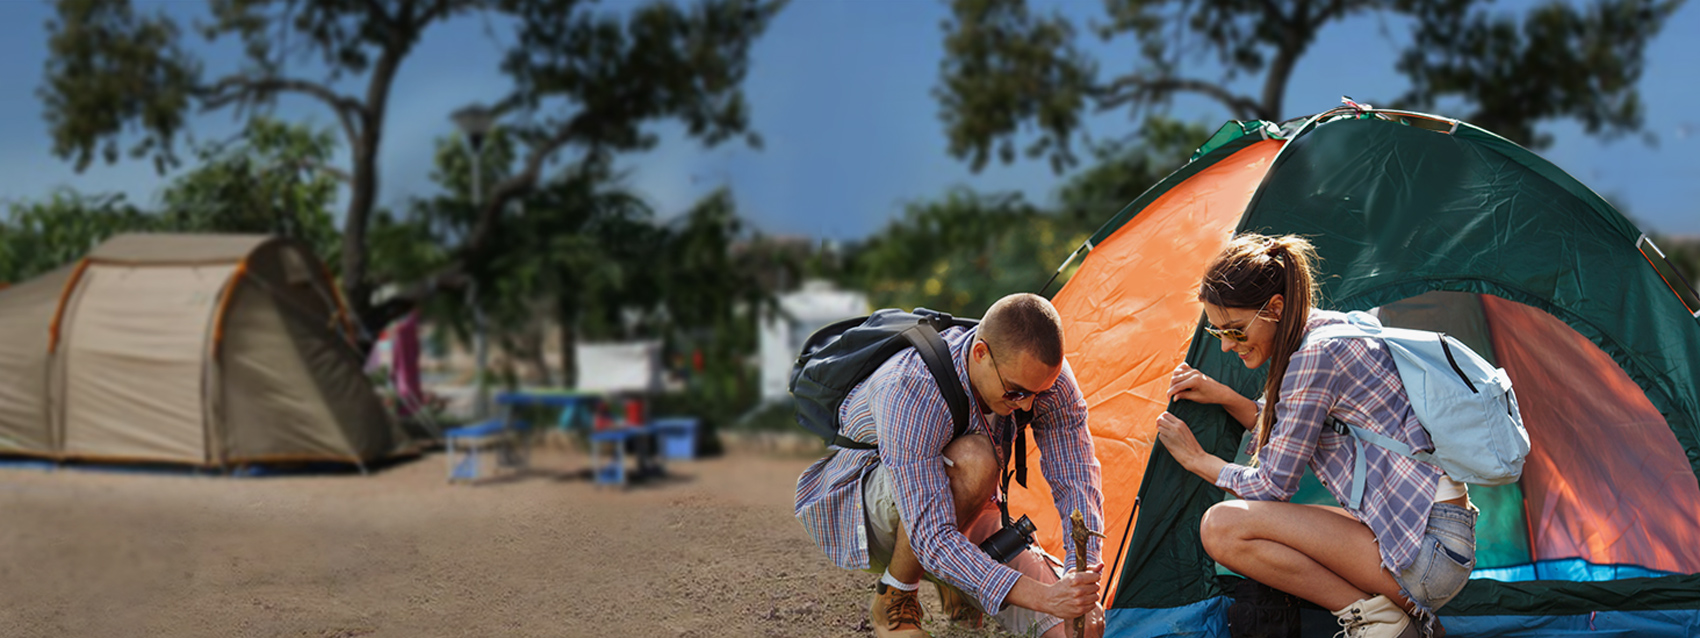 Individual plots for tents perfectly fitted for tents - Camping Ria Formosa in Algarve